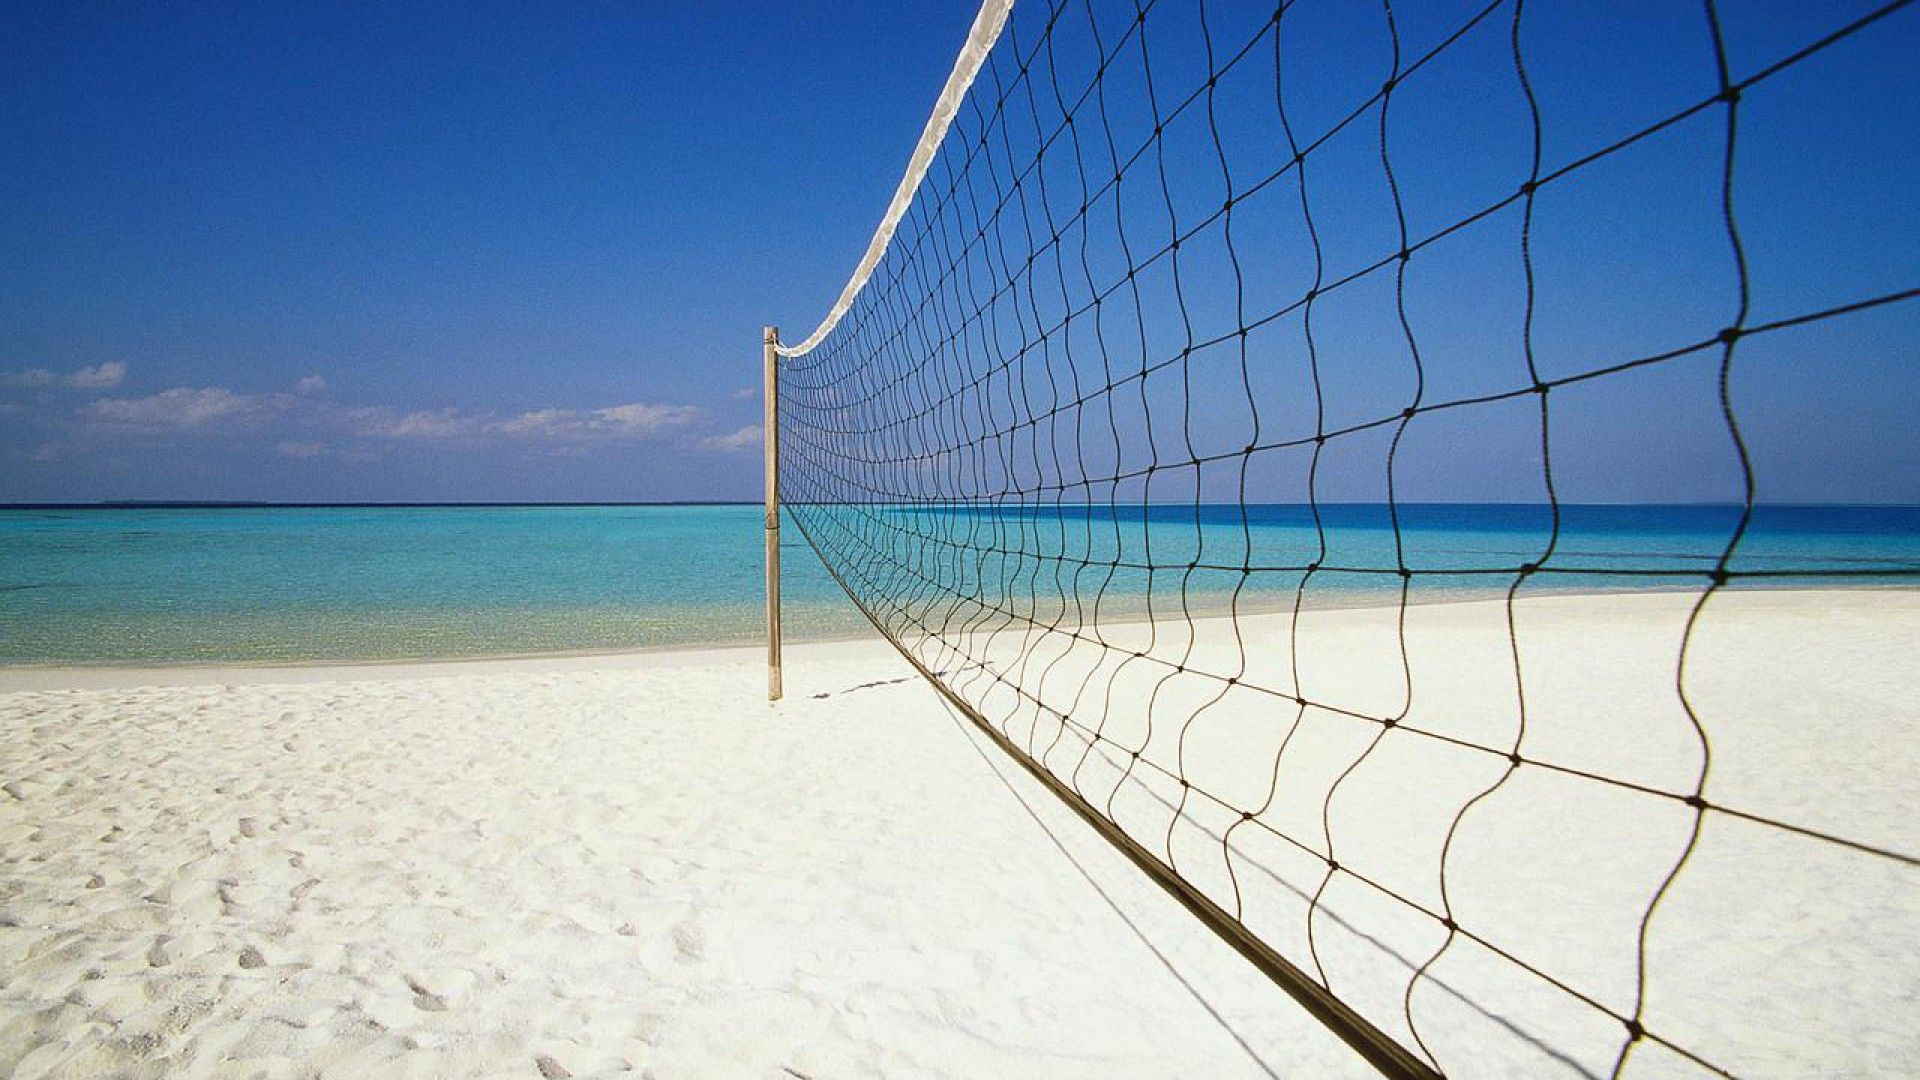 Volleyball 1080p Background Http Wallpapers And Backgrounds Net Volleyball 1080p Background Volleyball Wallpaper Beach Volleyball Volleyball Pictures